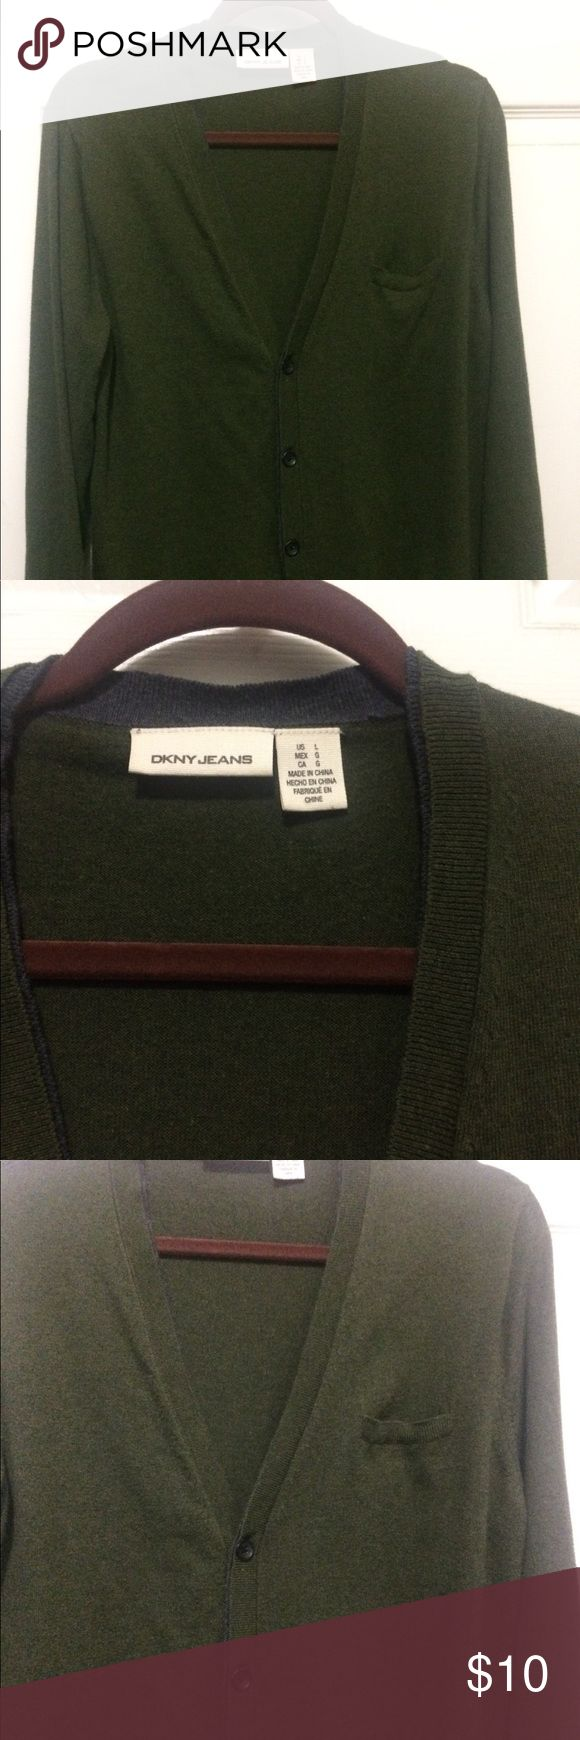 DKNY Men's Cardigan DKNY large, olive green cardigan for men with slit pocket in front. 100% cotton. DKNY Jackets & Coats Lightweight & Shirt Jackets